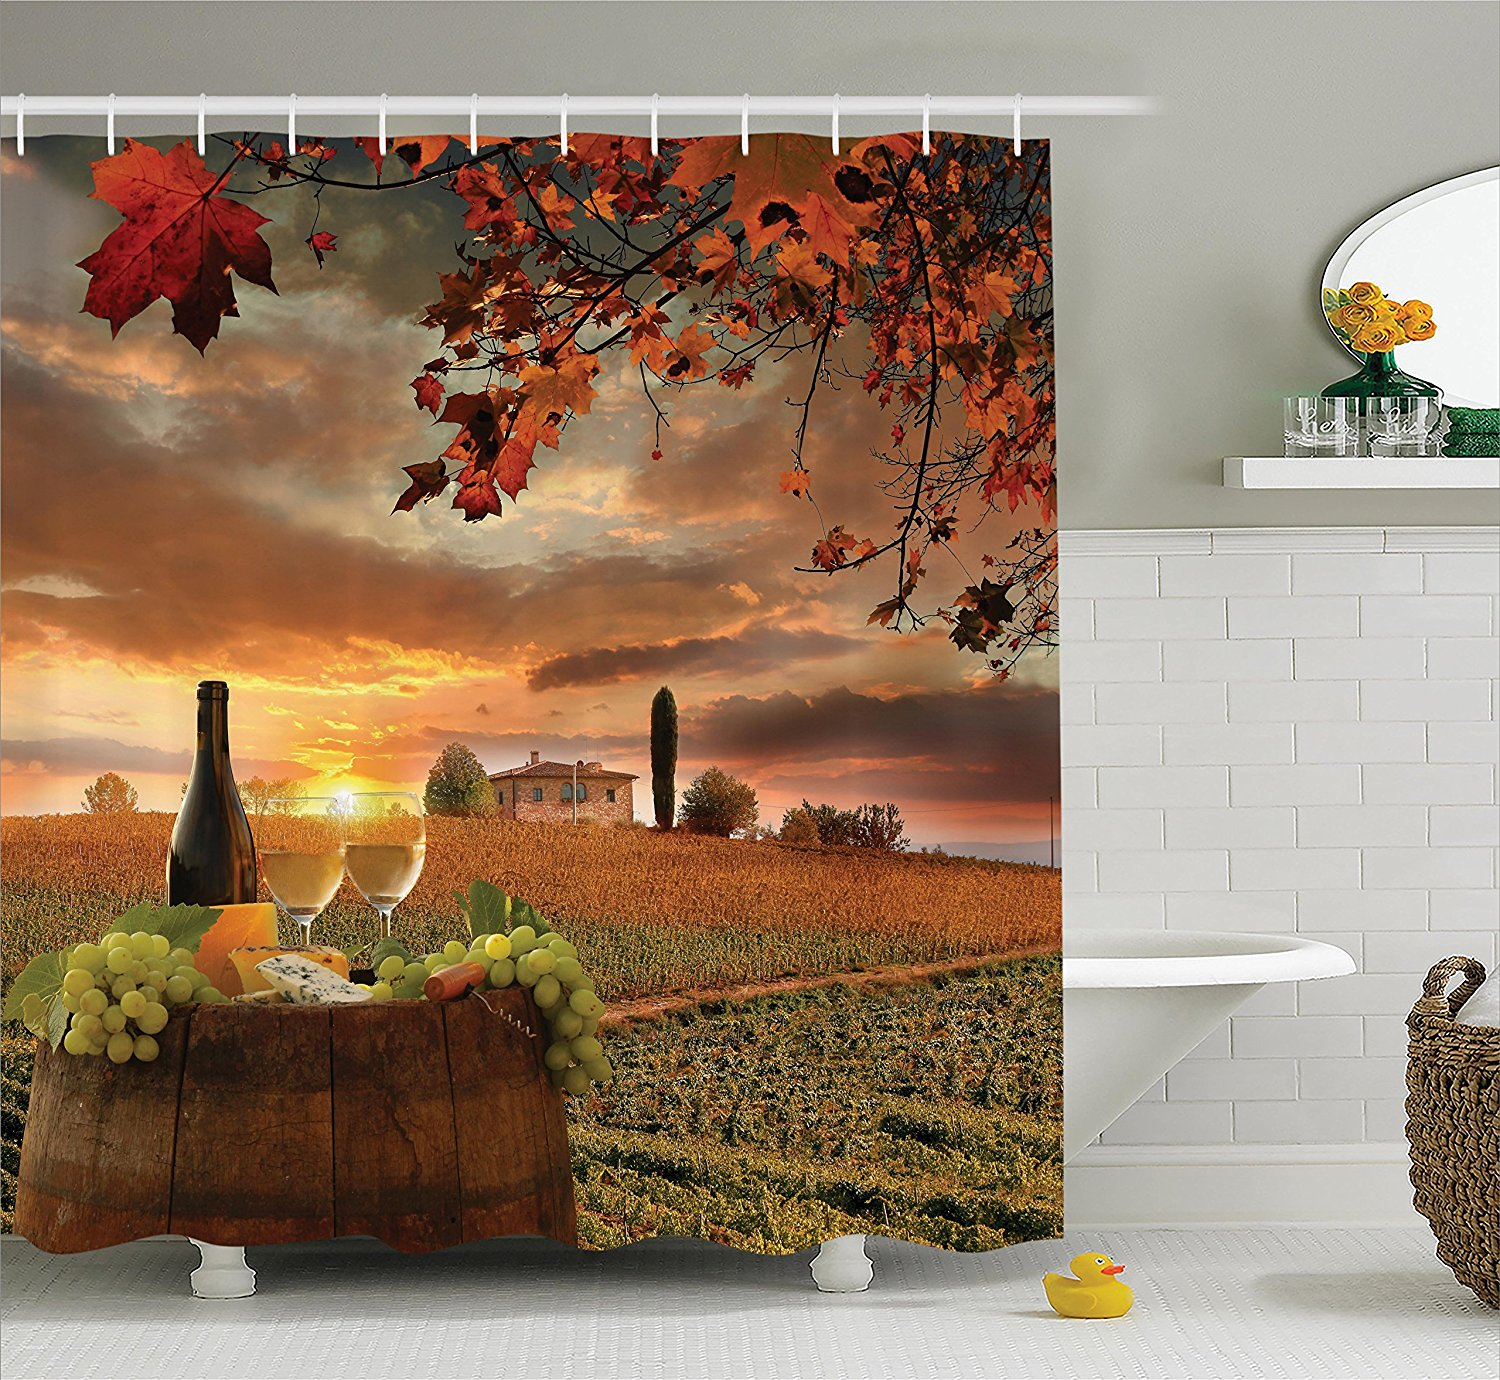 White Wine With Barrel On Vineyard At Sunset Shower Curtain Polyester Hotel Bathroom Hooks Ring72x72 Inch